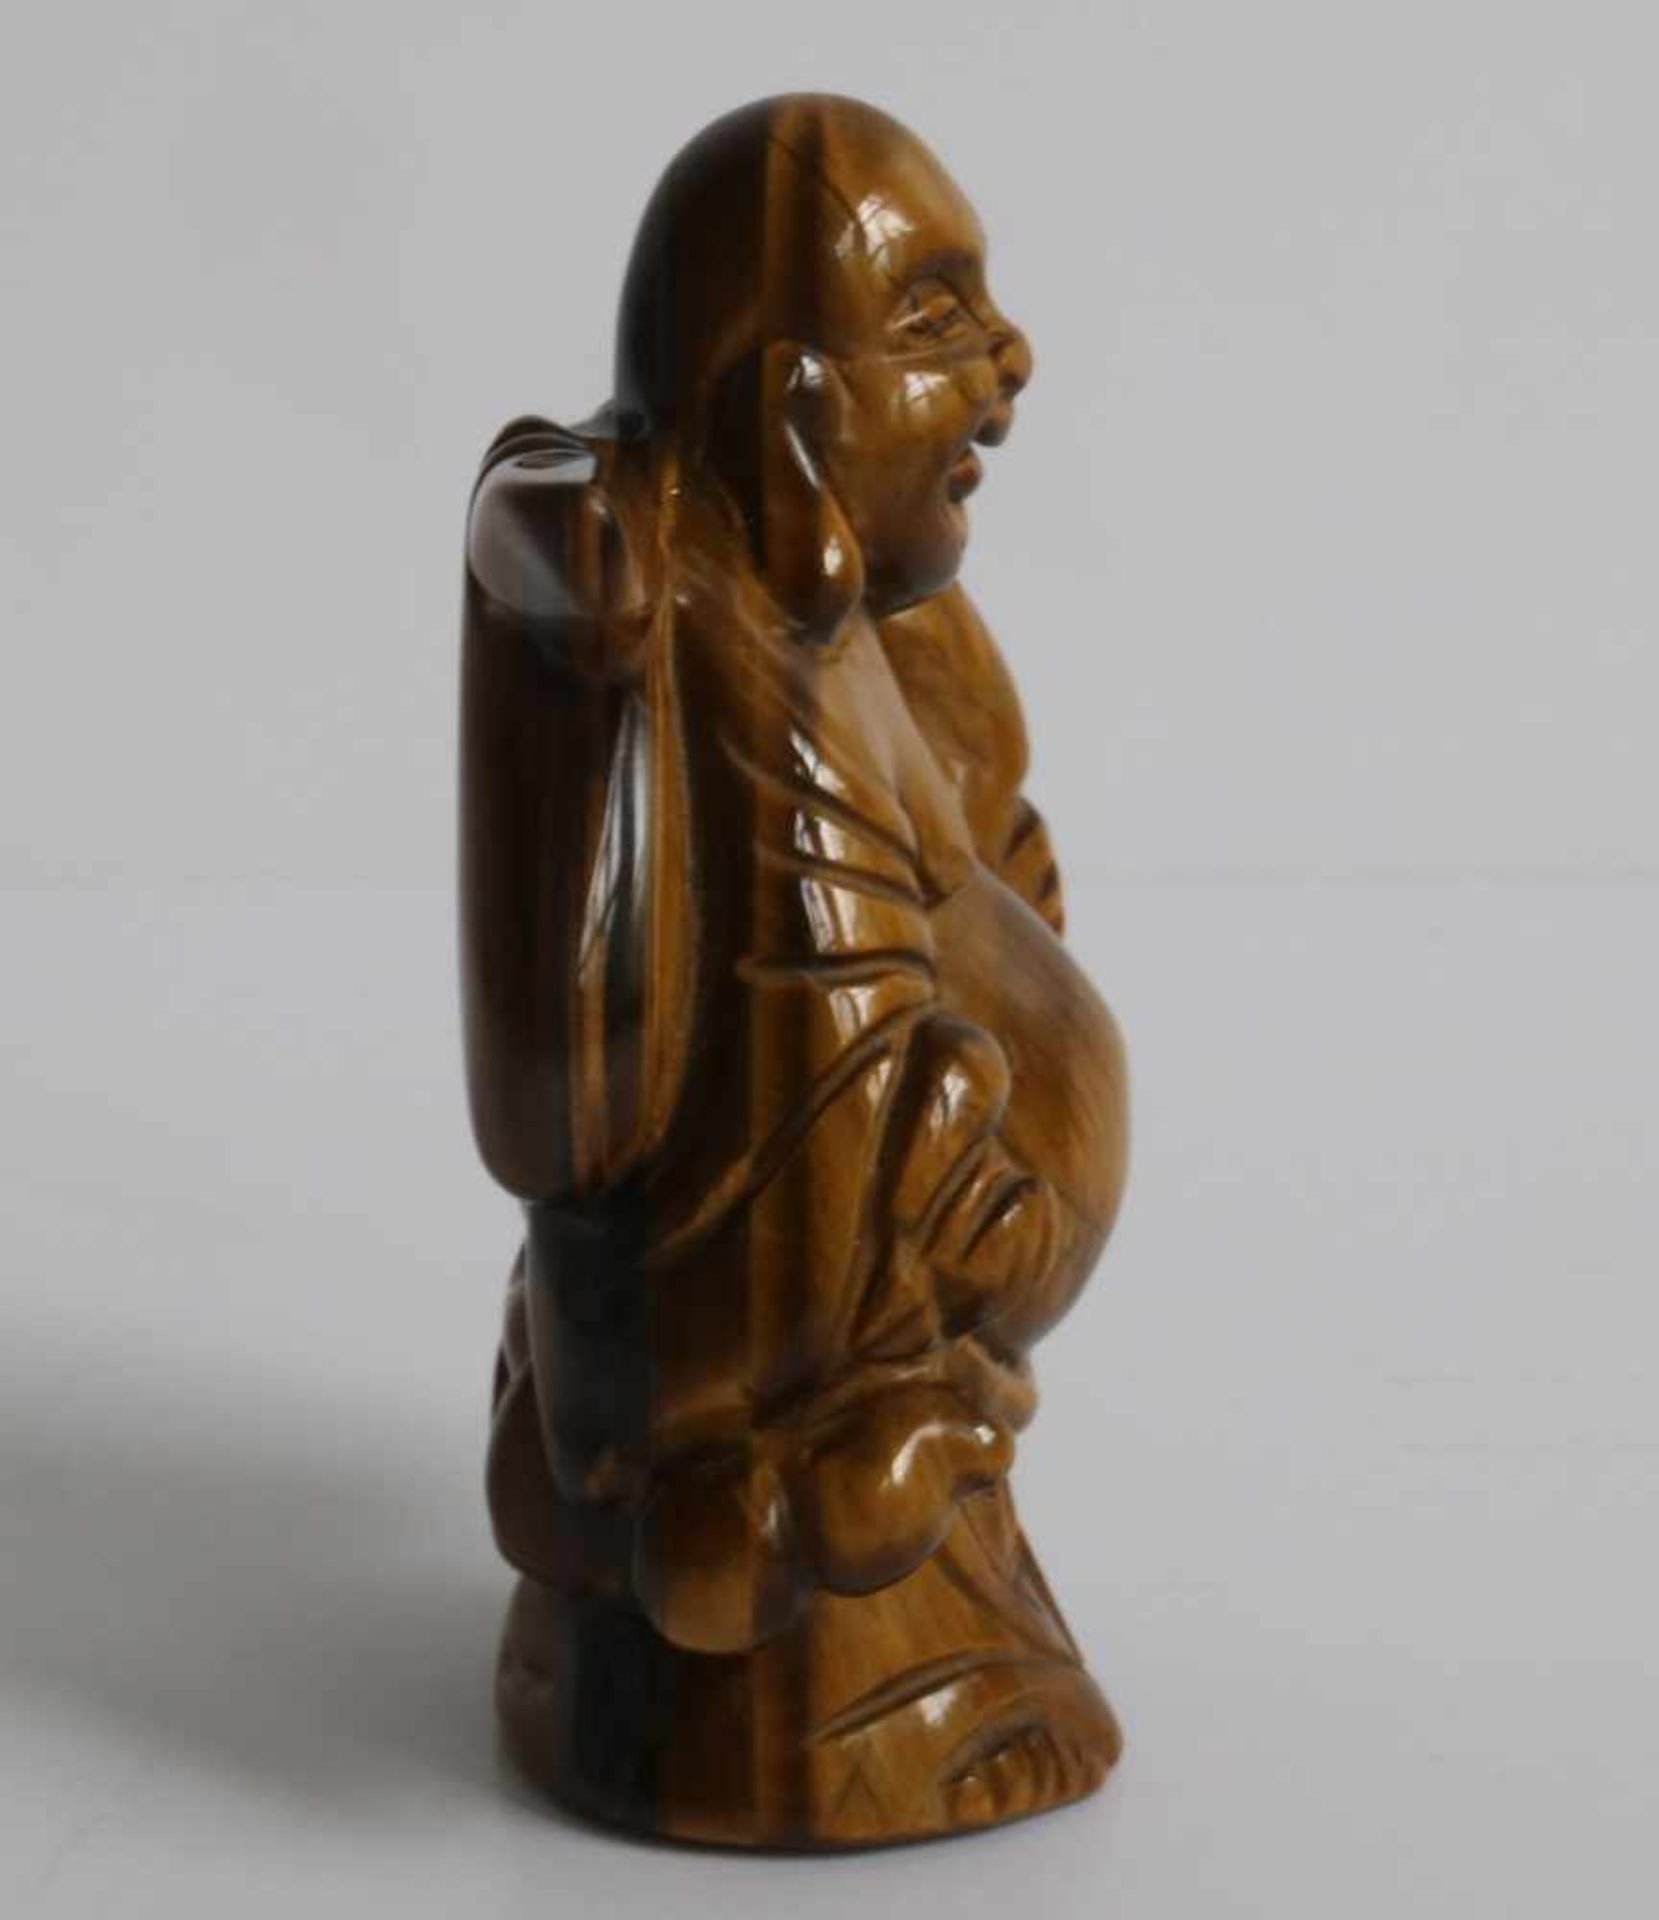 Los 469 - Netsuke Tiger's eye Ivory figure of a Hotei, carrying a gourd and knapsack Japan early 20th century